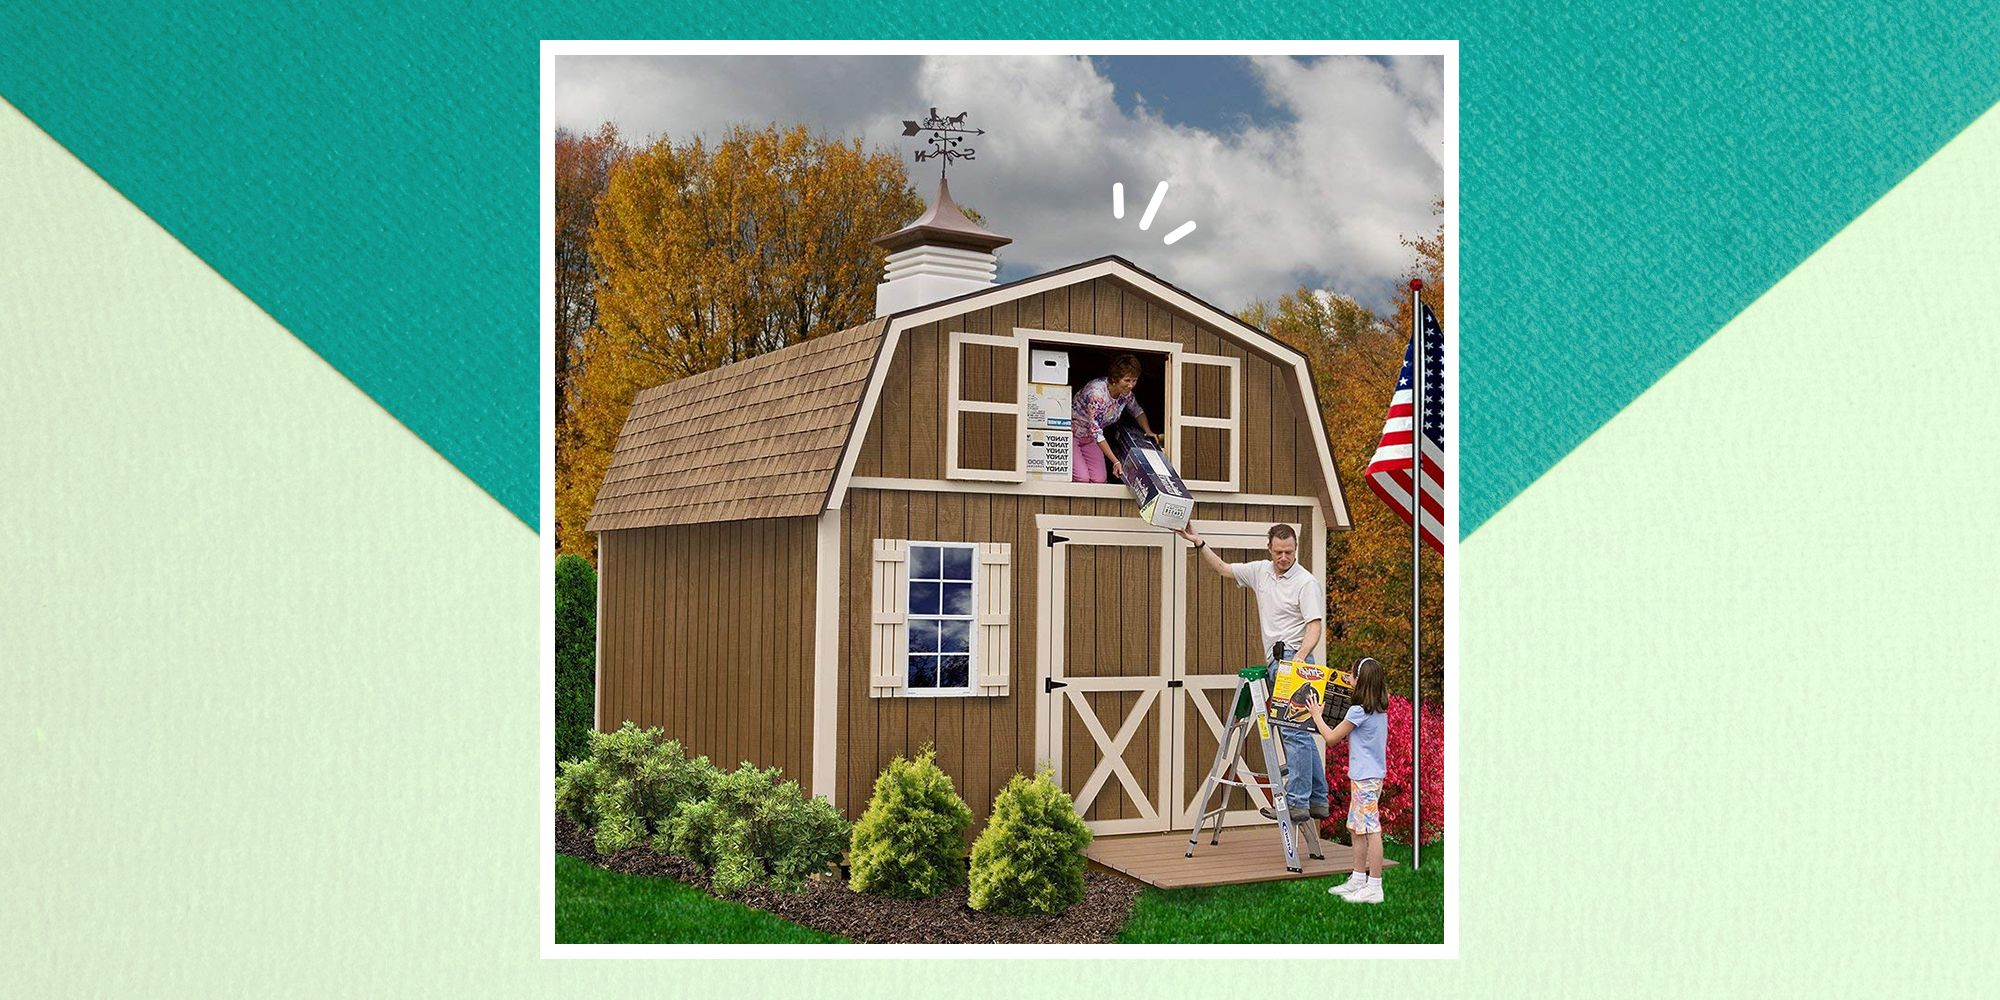 This Tiny House Backyard Barn From Amazon Comes Complete With a 2nd Floor Loft